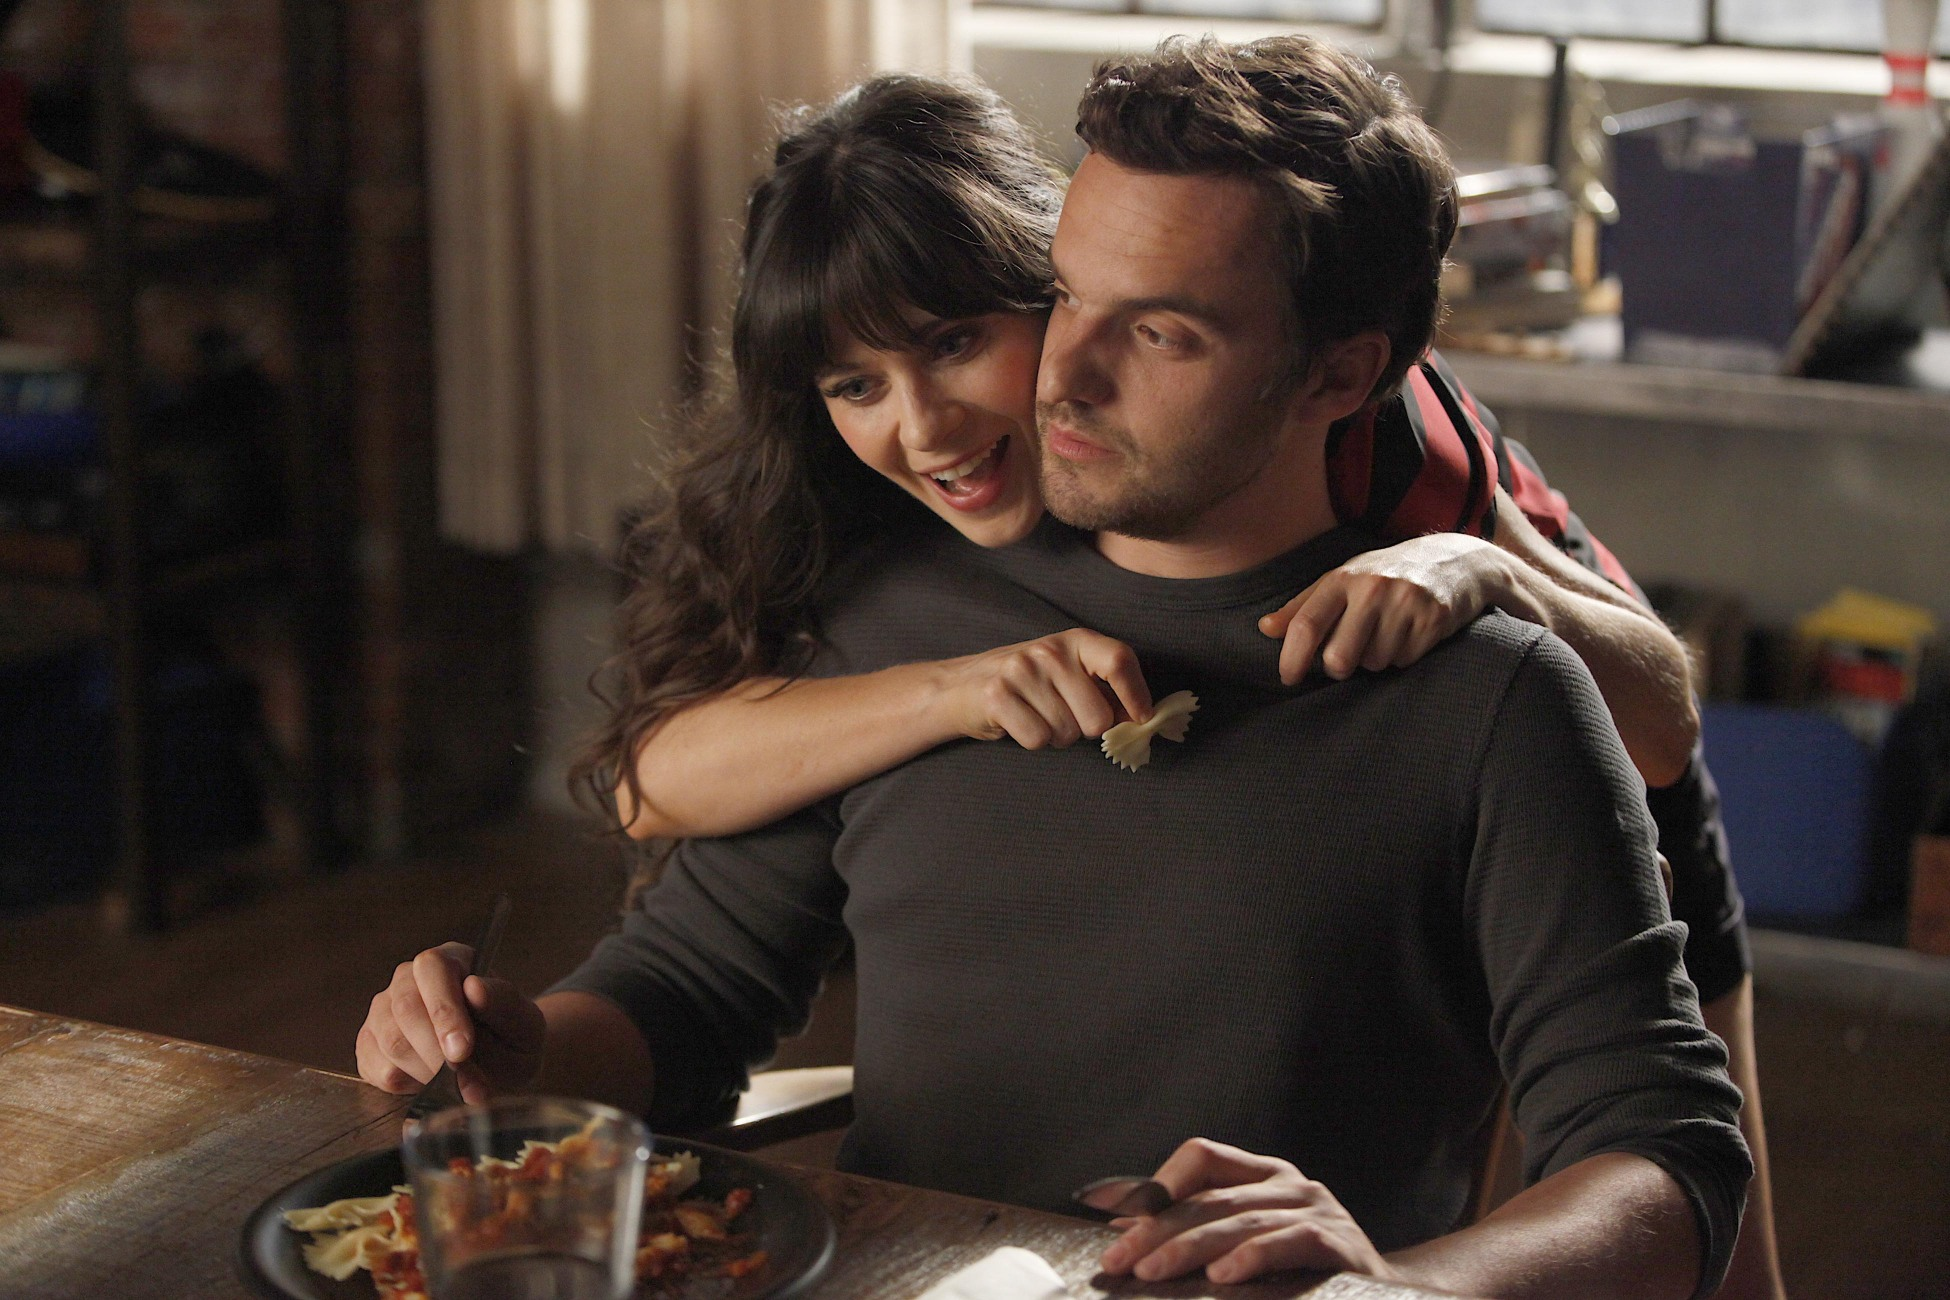 Cute Love Couples Wallpapers For Mobile New Girl Full Hd Wallpaper And Background Image